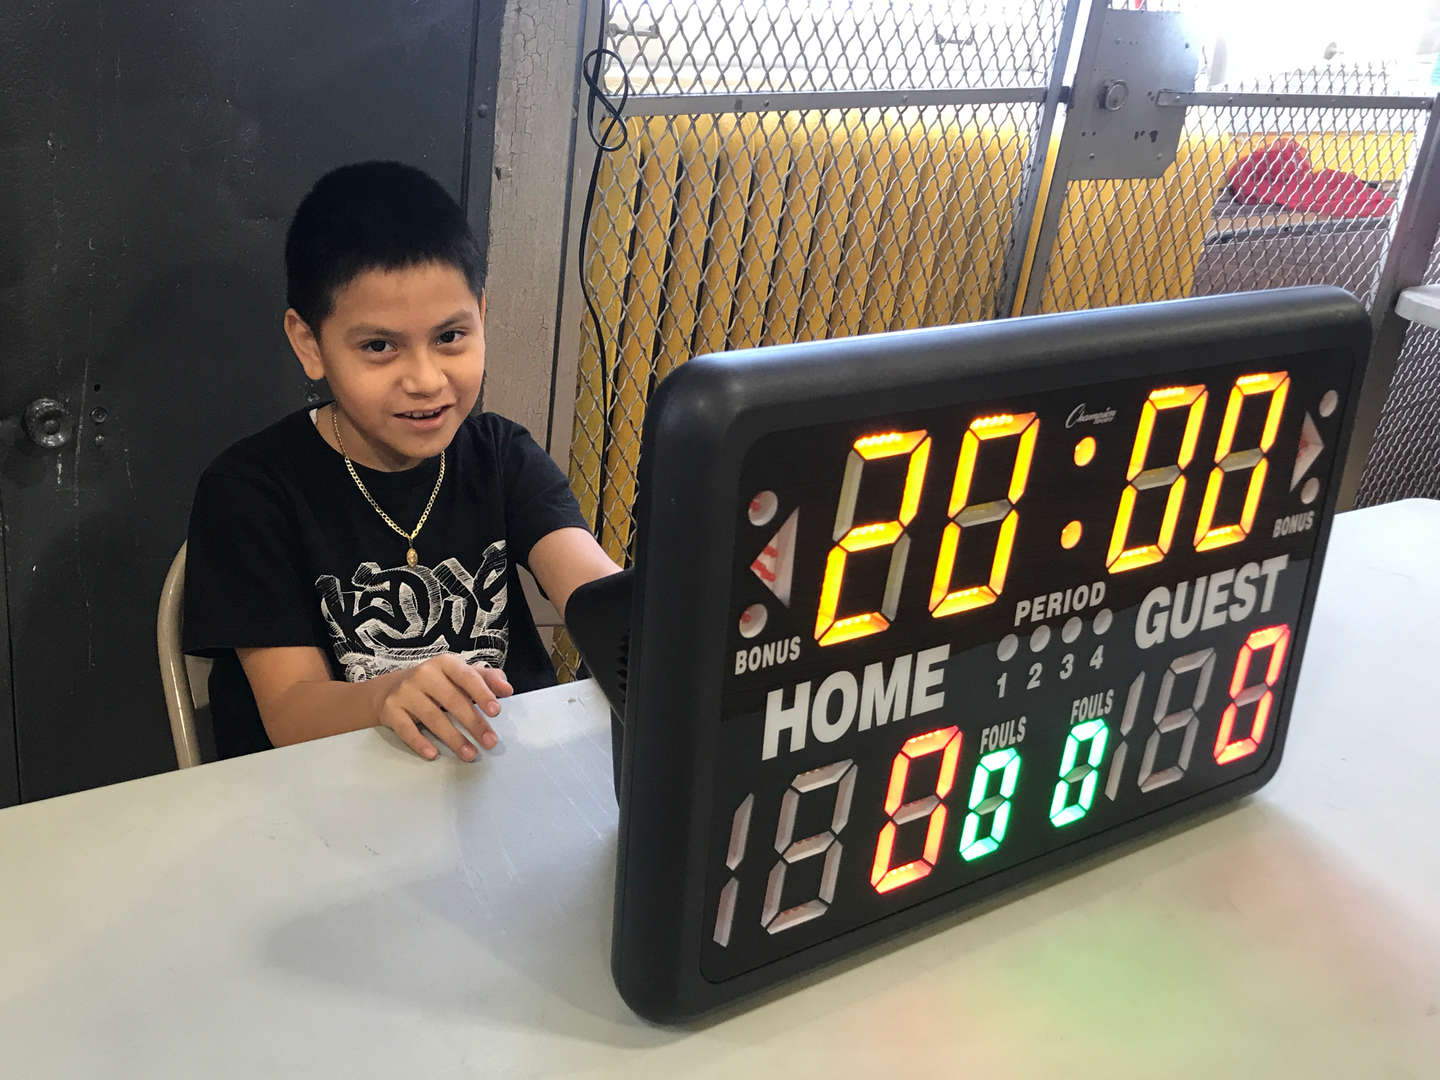 score keeper at the table with the digital display